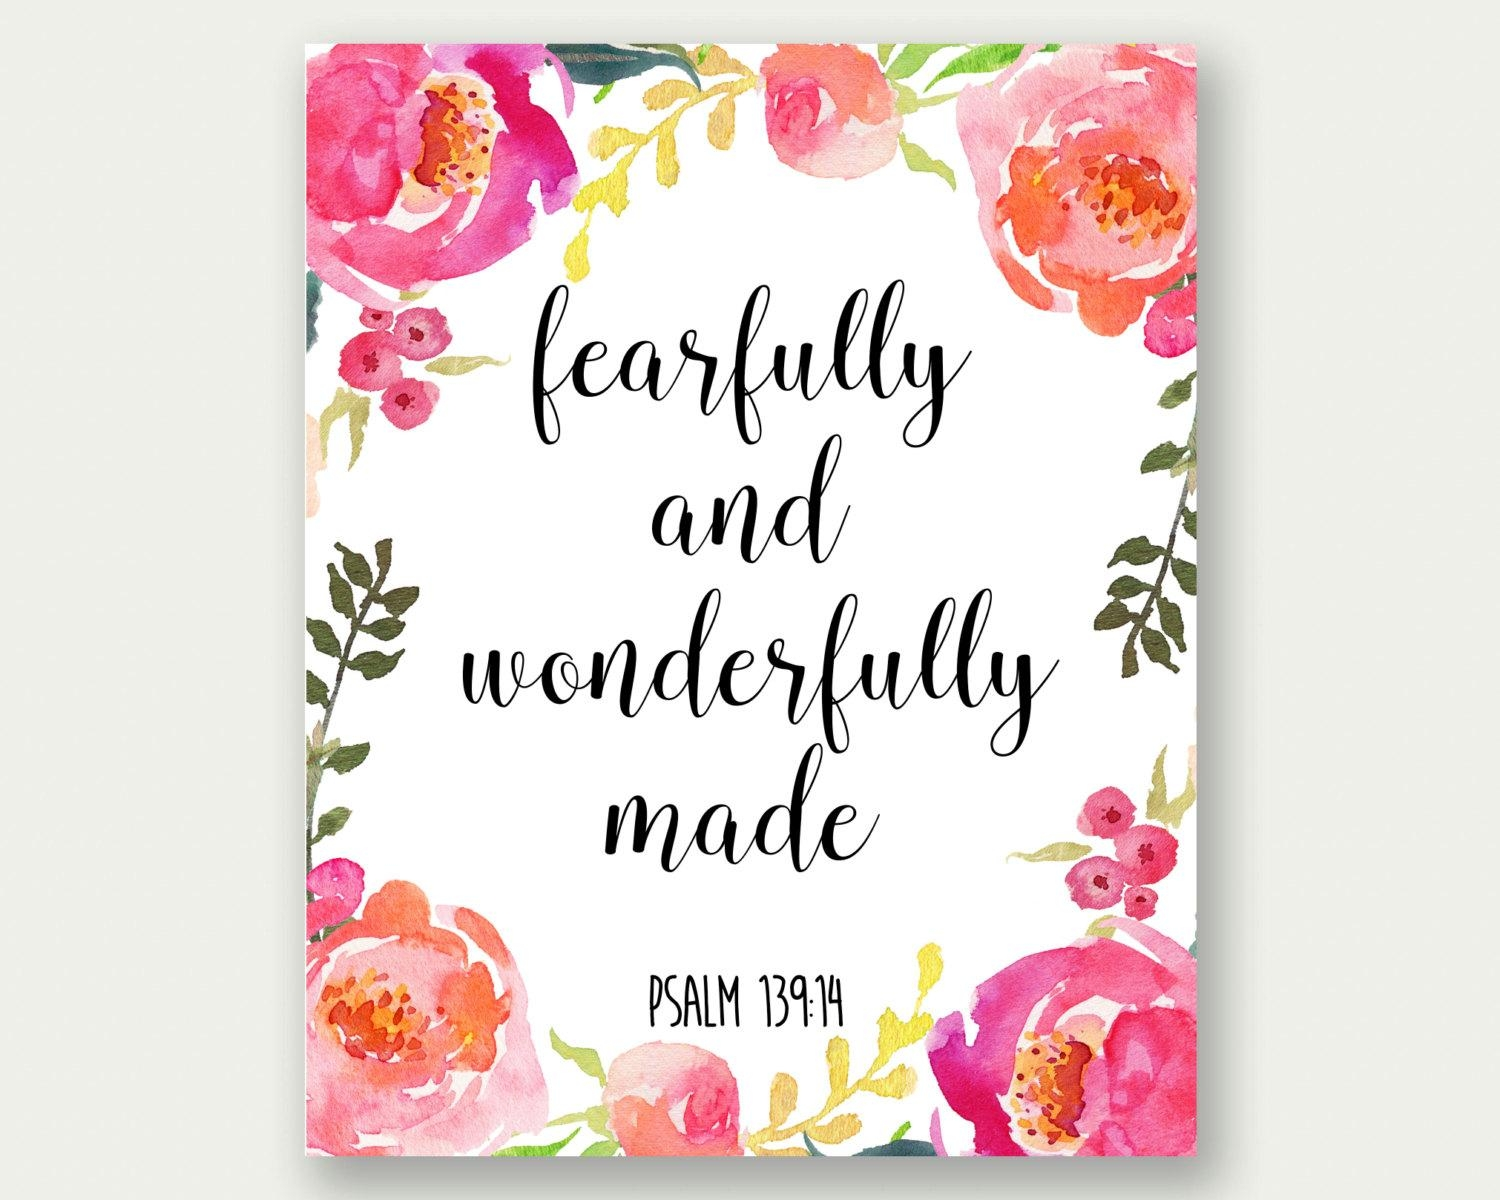 Fearfully And Wonderfully Made Psalm 139:14 Girl Nursery Pertaining To Fearfully And Wonderfully Made Wall Art (View 3 of 20)